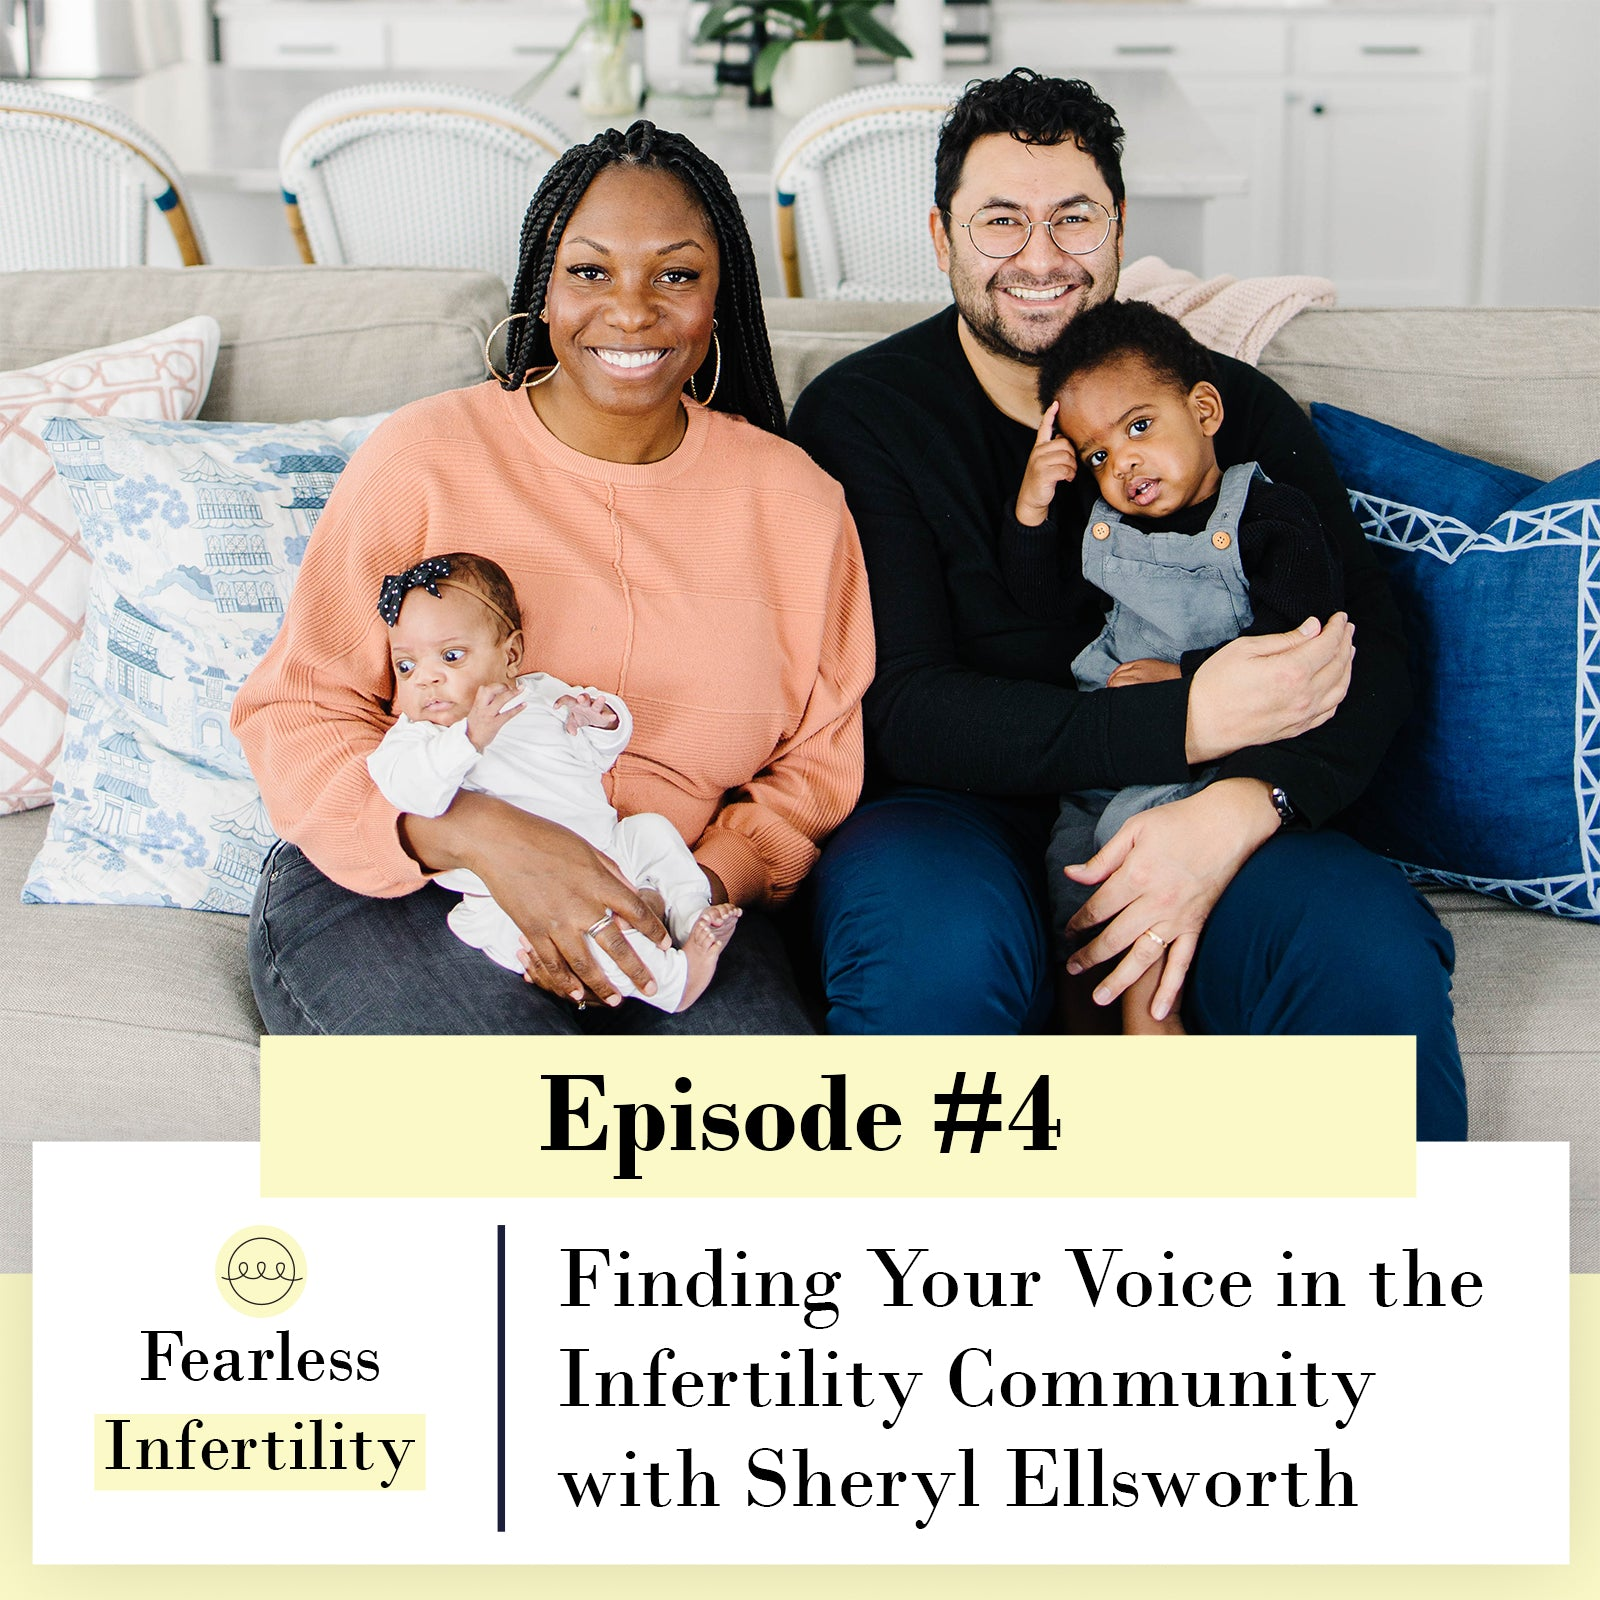 4. Finding Your Voice in the Infertility Community with Sheryl Ellsworth